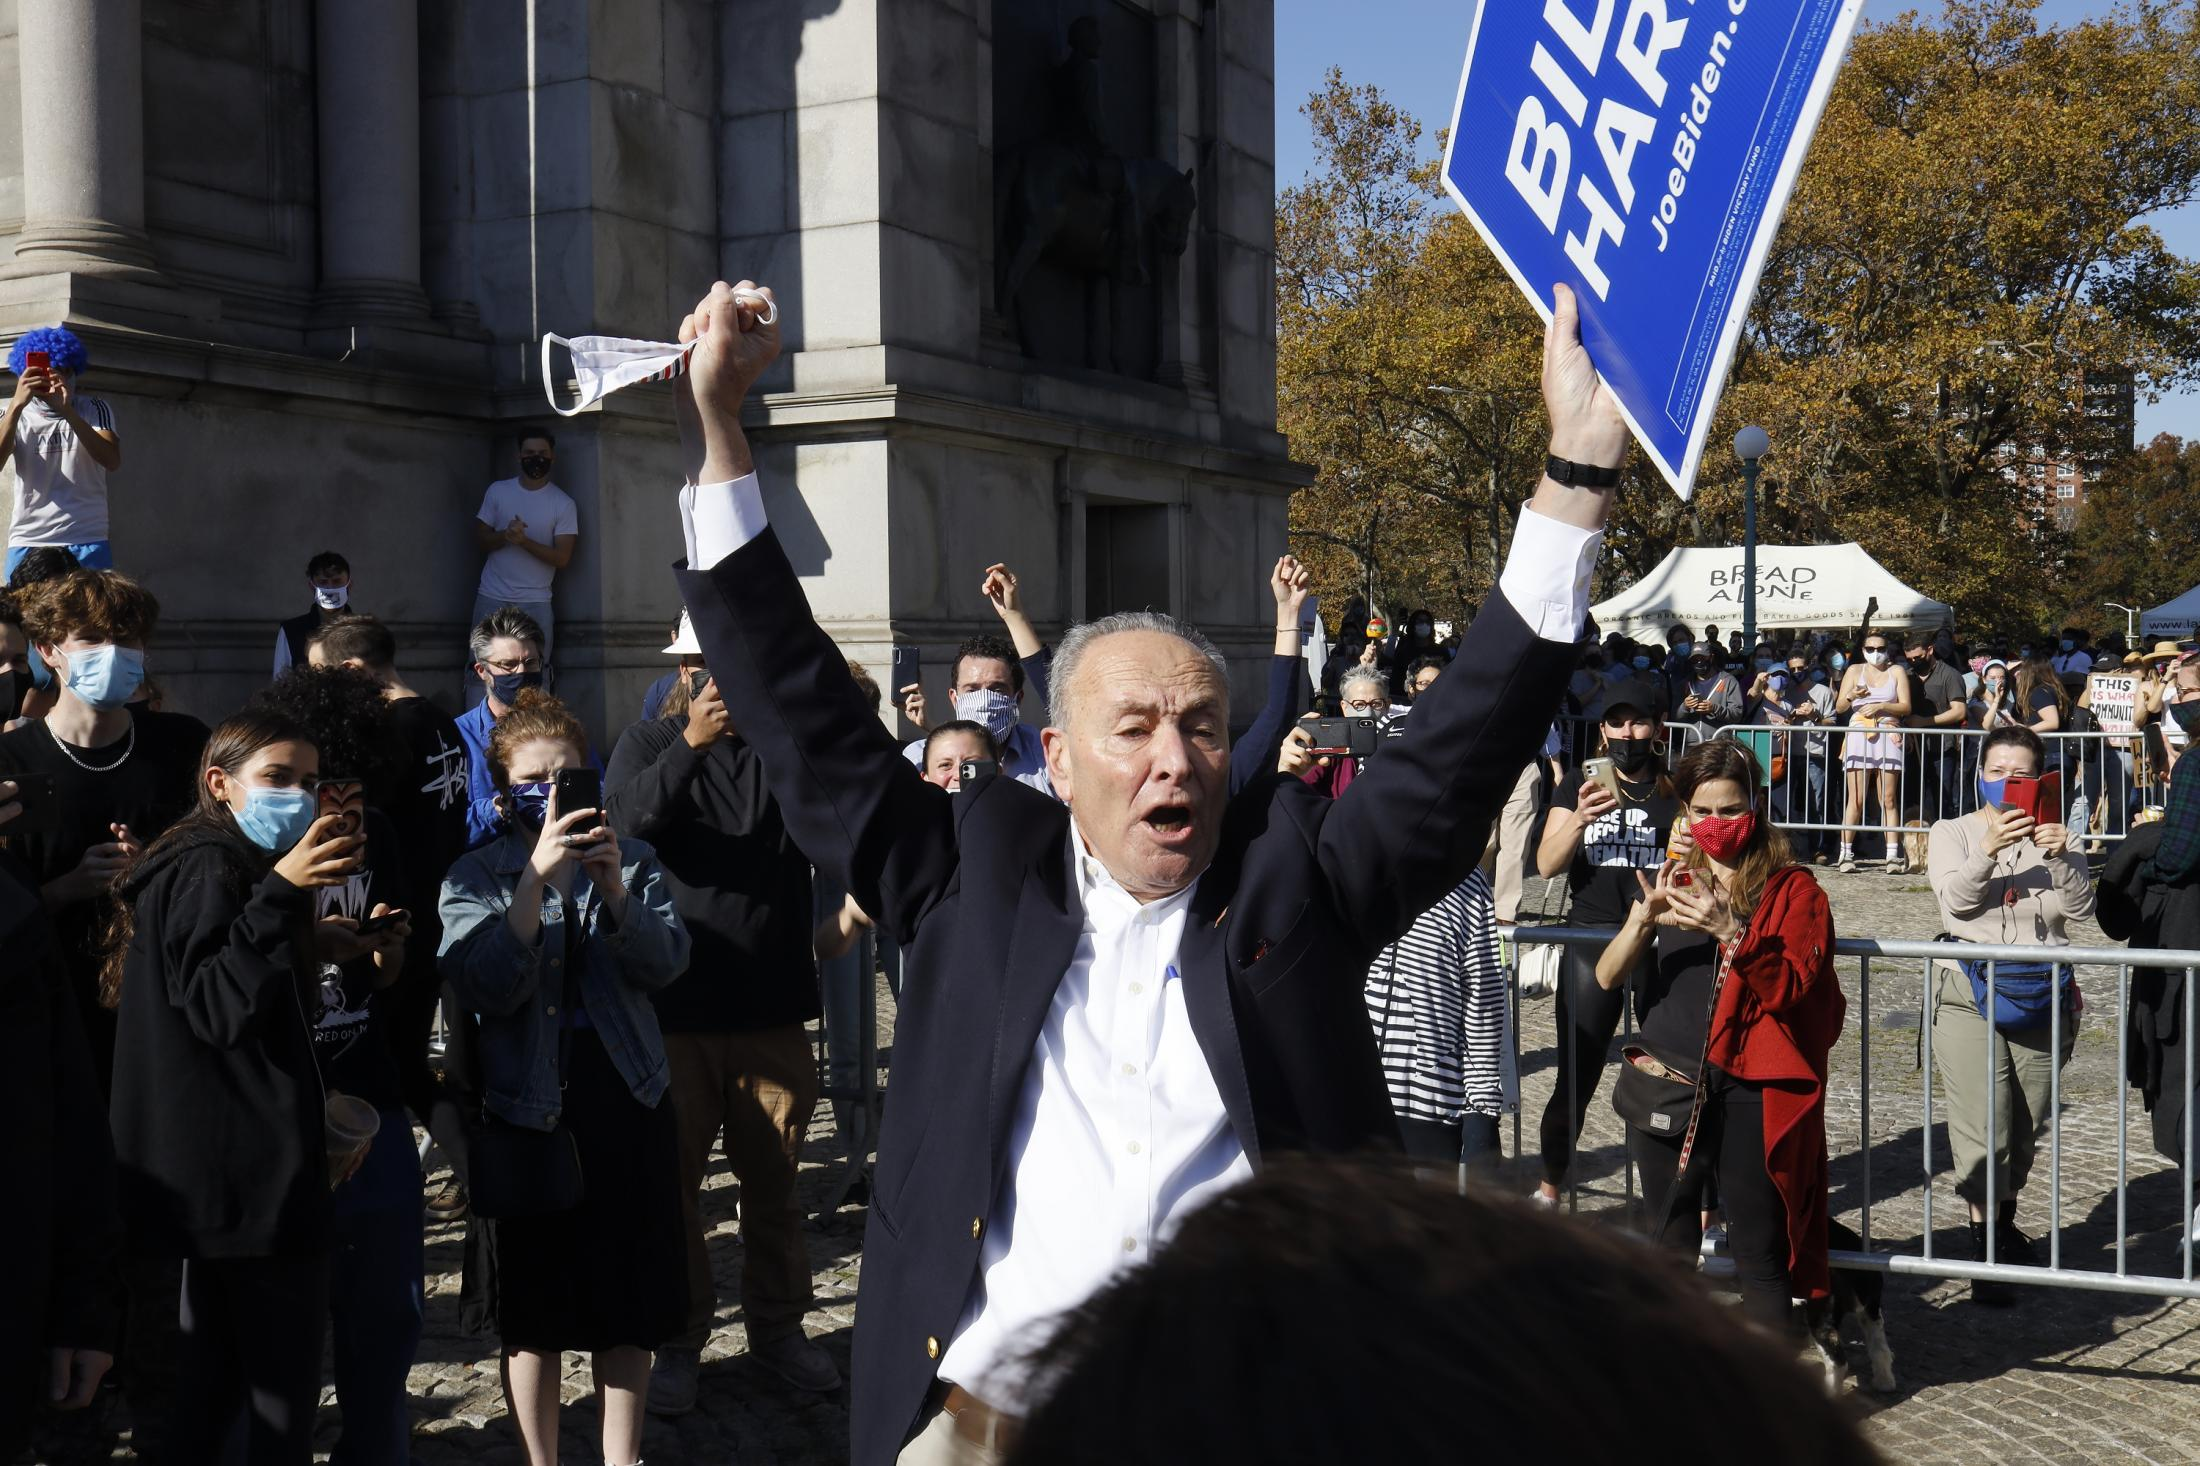 Senator Minority Leader Chuck Schumer celebrating with crowds of people at Grand Army Plaza in Brooklyn, the new President elect Joe Biden and Vice President elect Kamala Harris on their win. November 7, 2020